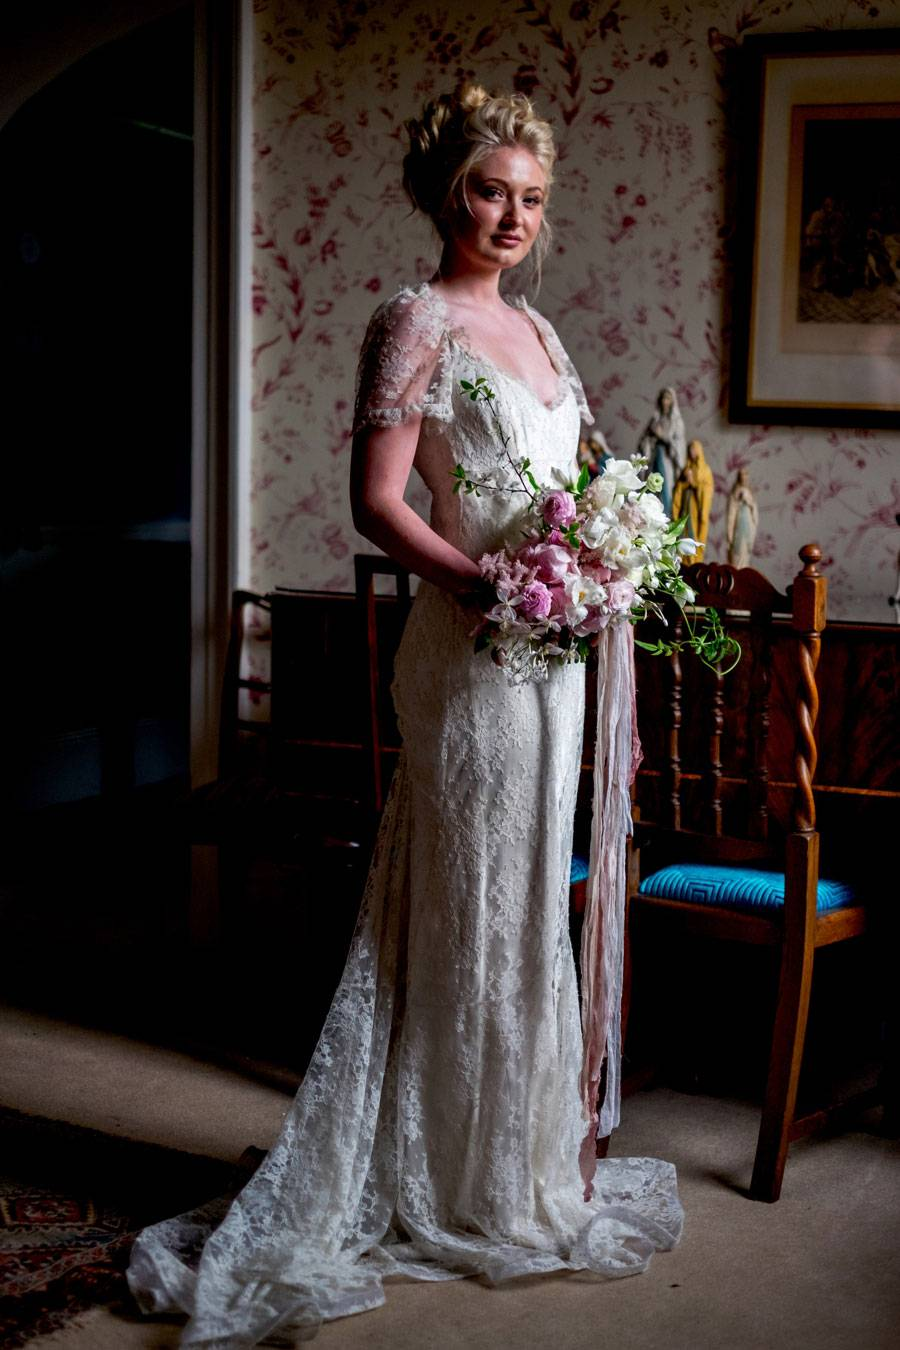 Image - Dominic Whiten Florals - Moss & Stone Floral Design